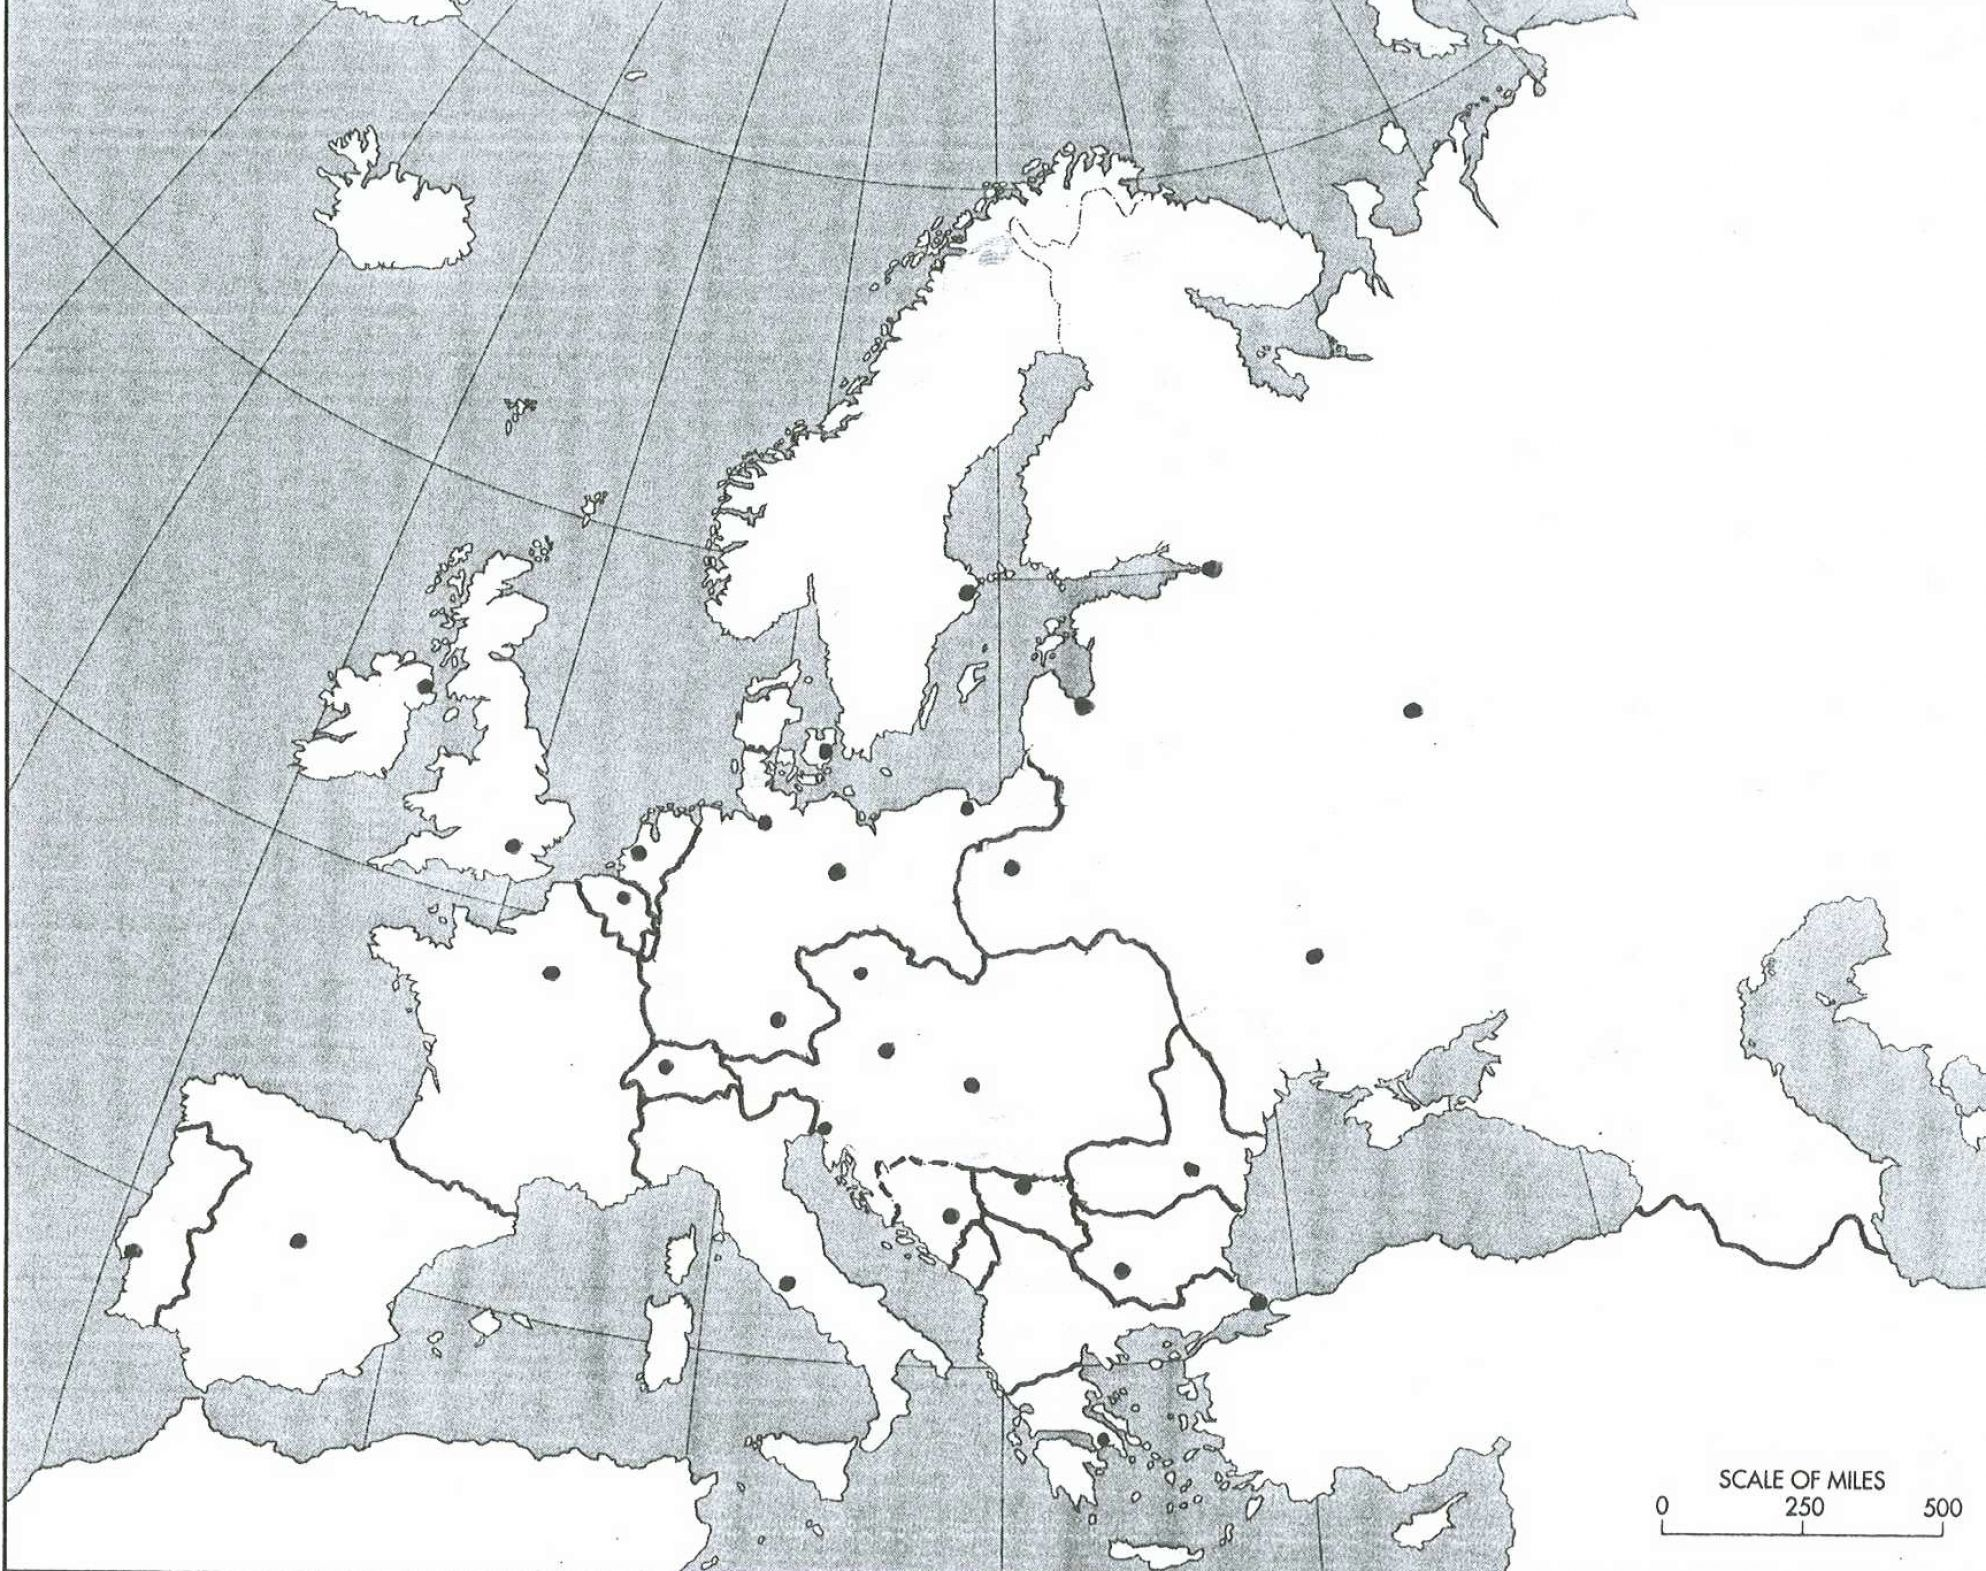 War Maps Of Europe Search Results Calendar 2015